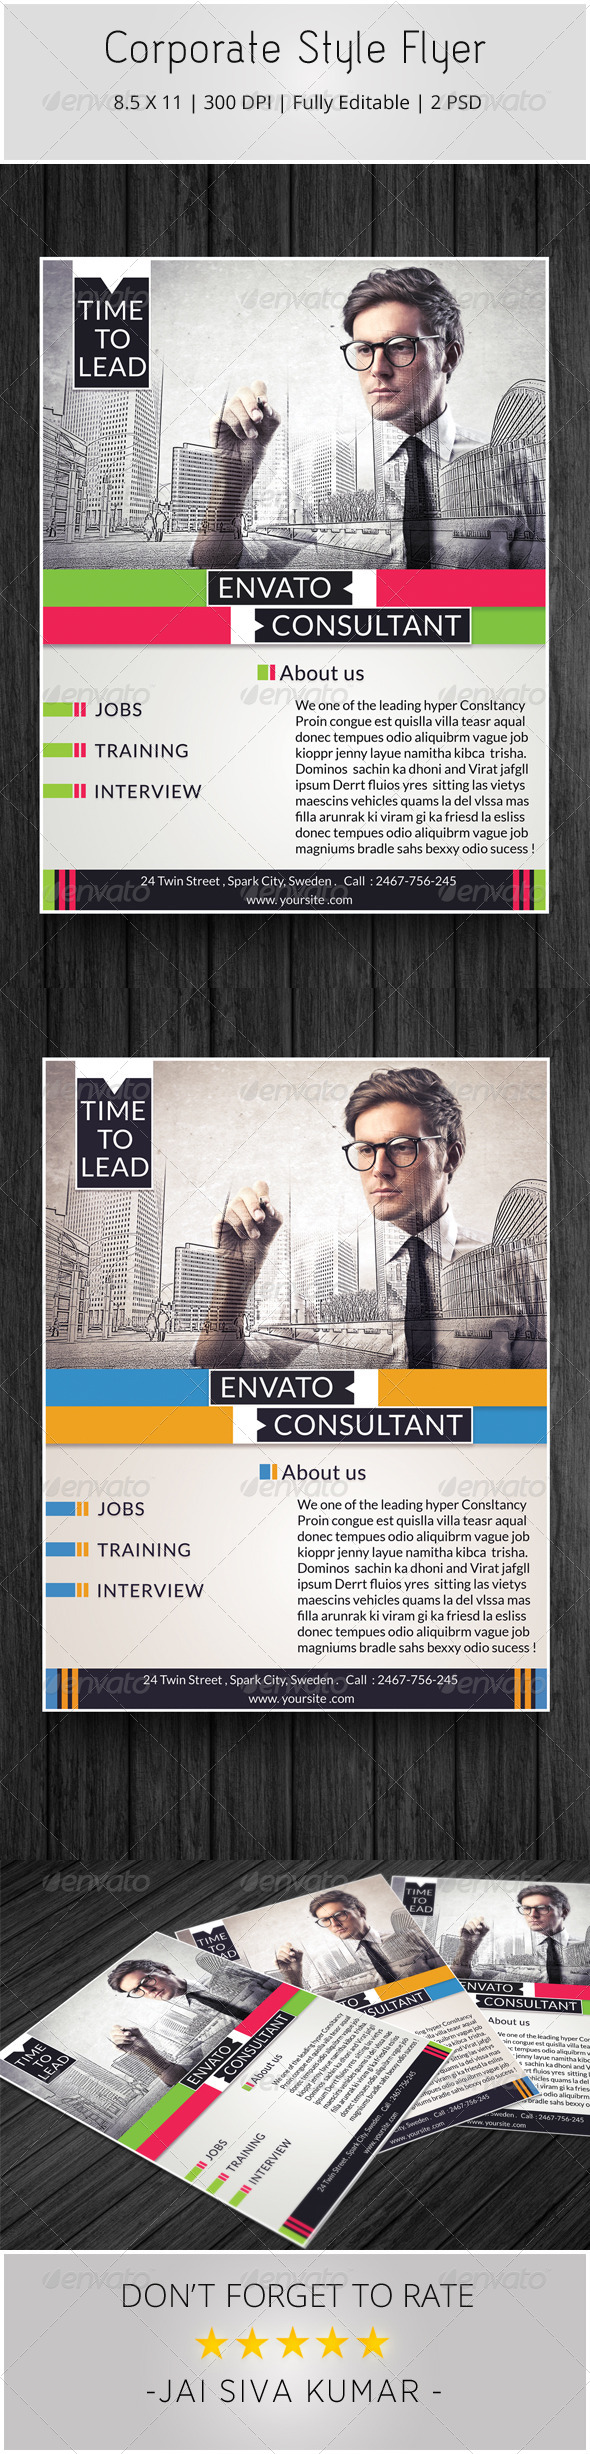 GraphicRiver Corporate Style Flyer 6161402